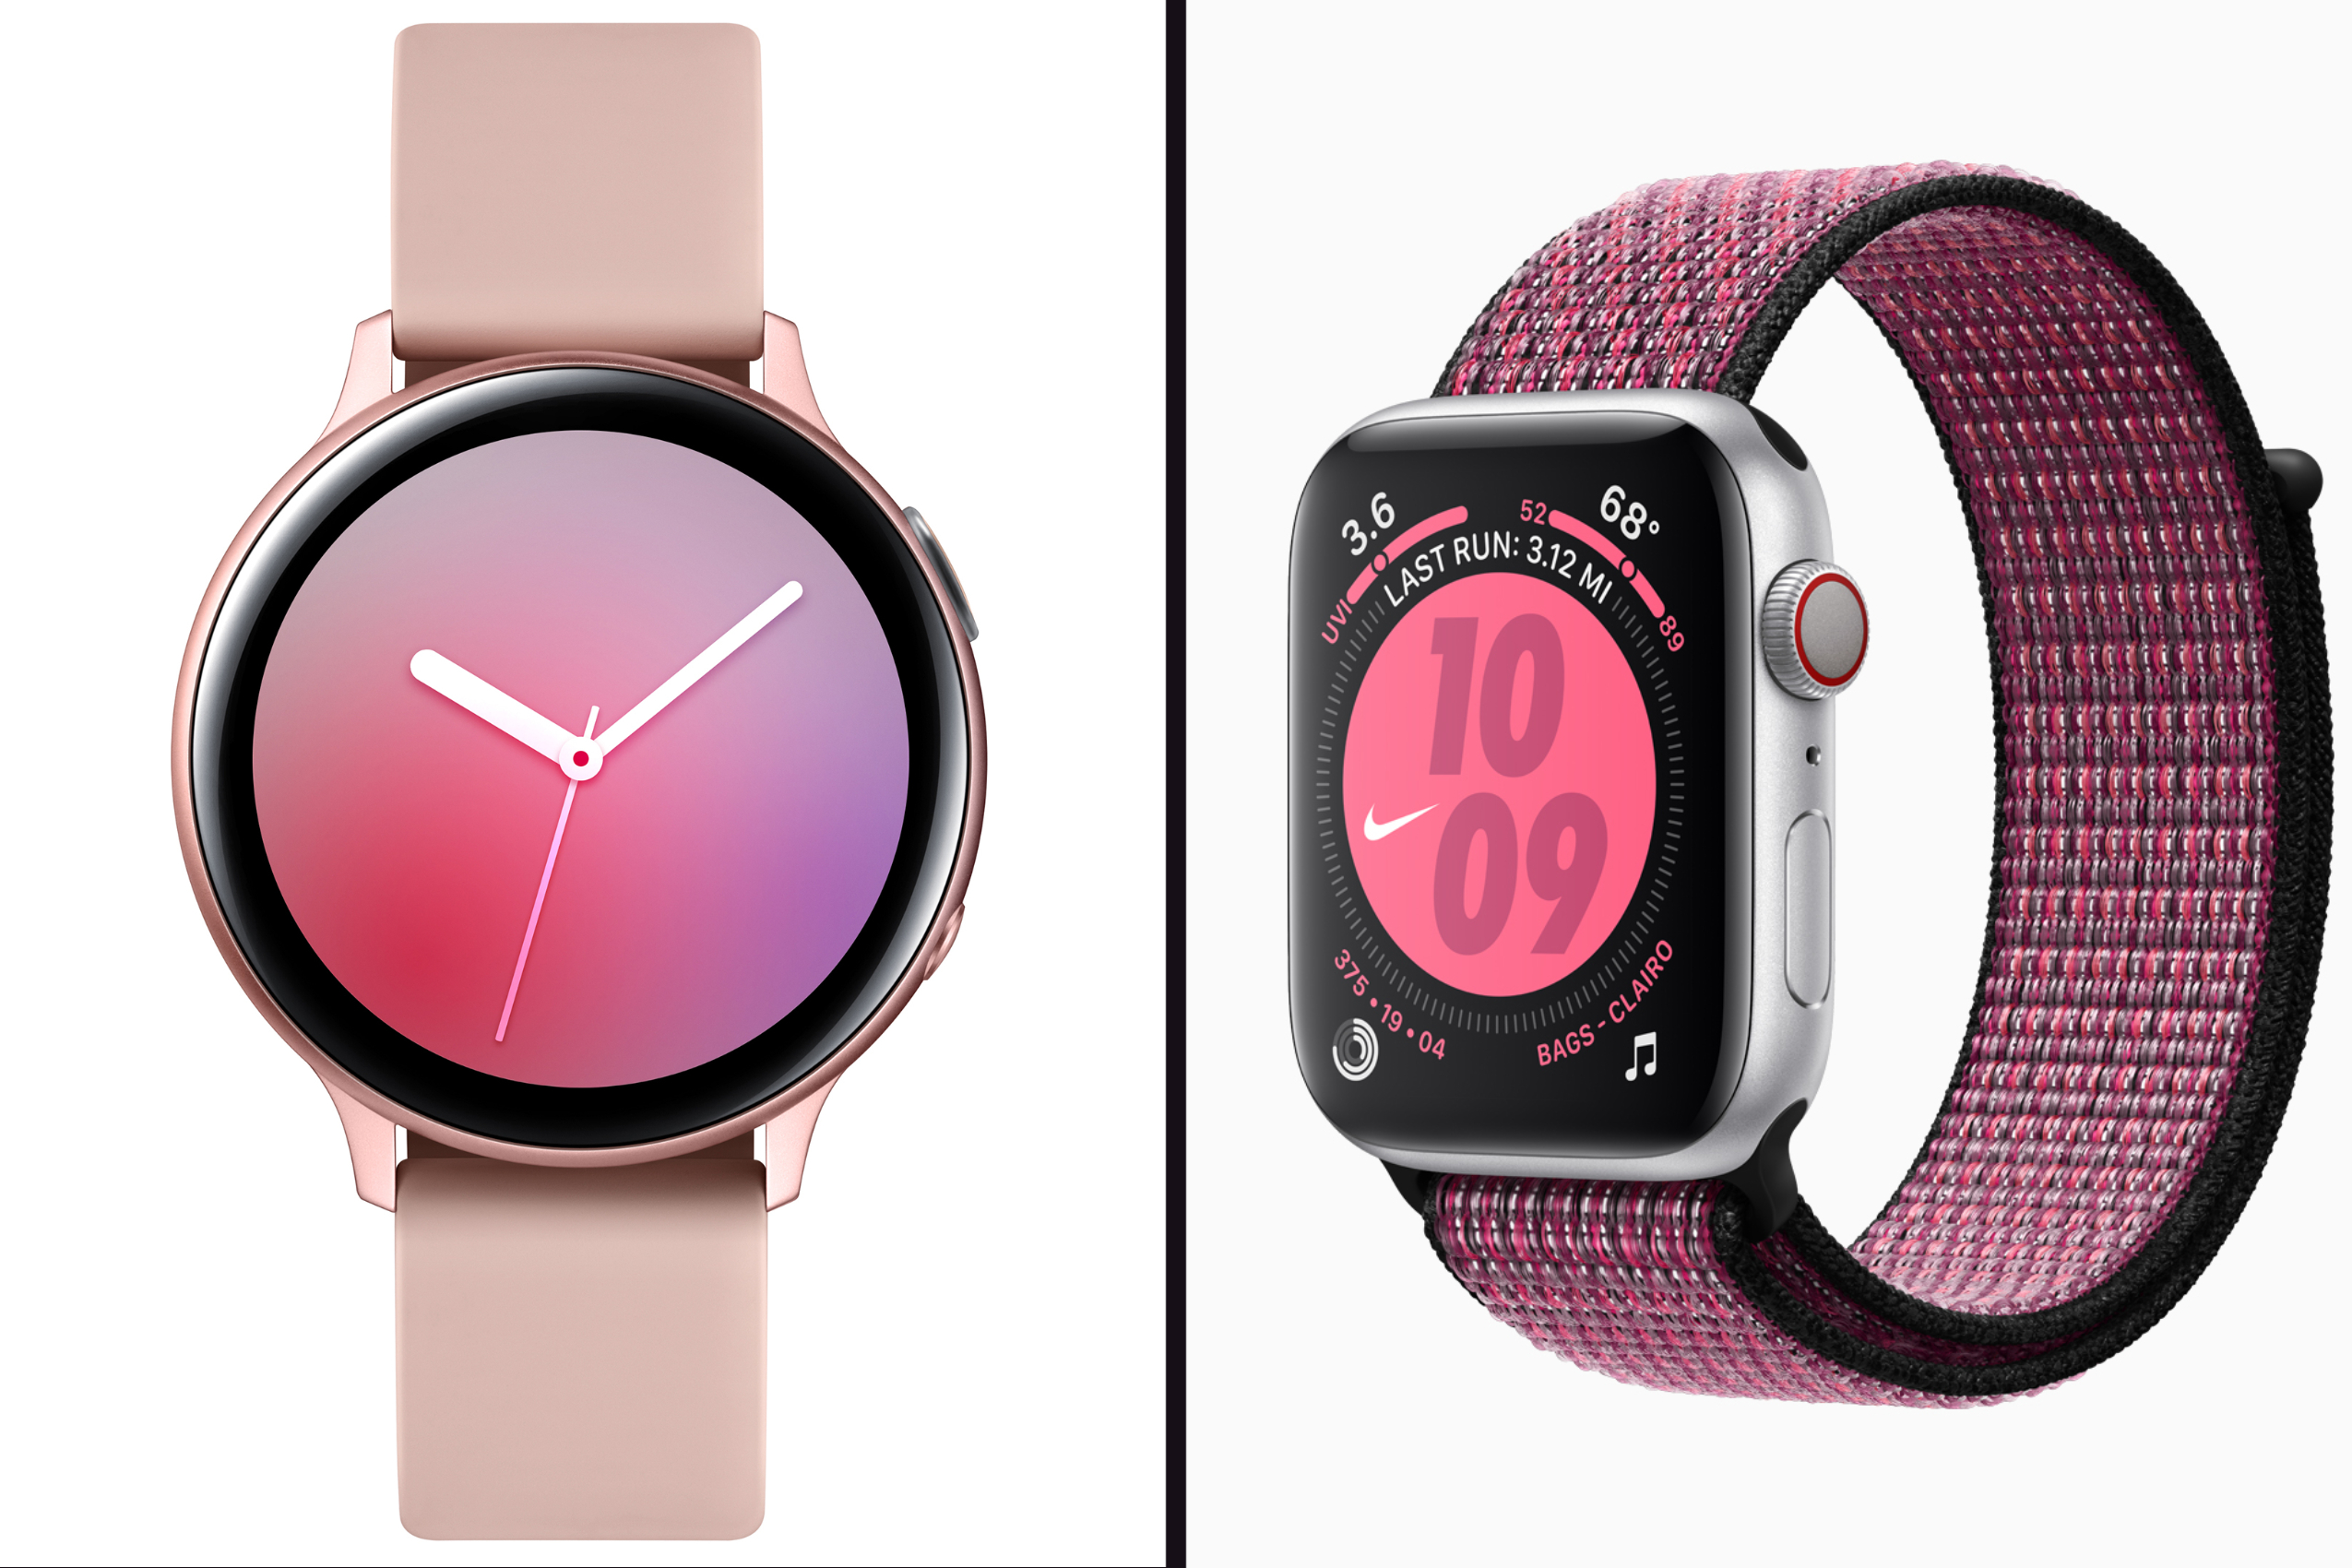 Samsung Galaxy Watch Active 2 and Apple Watch Series 5